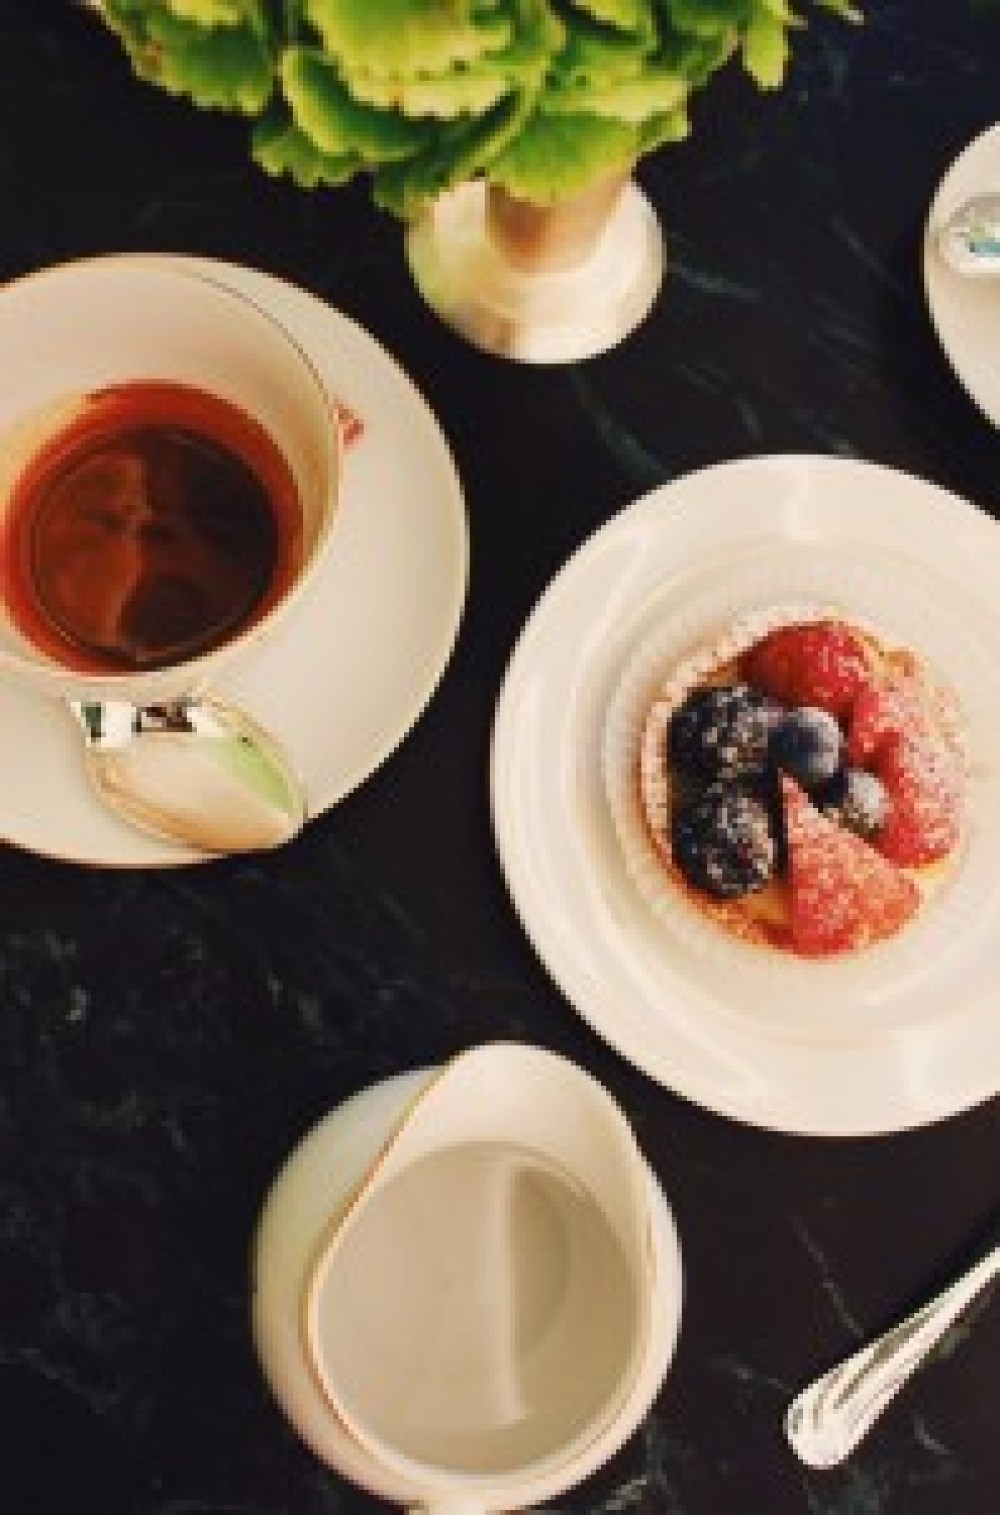 Coffee and Pastry at Pasticceria Marchesi